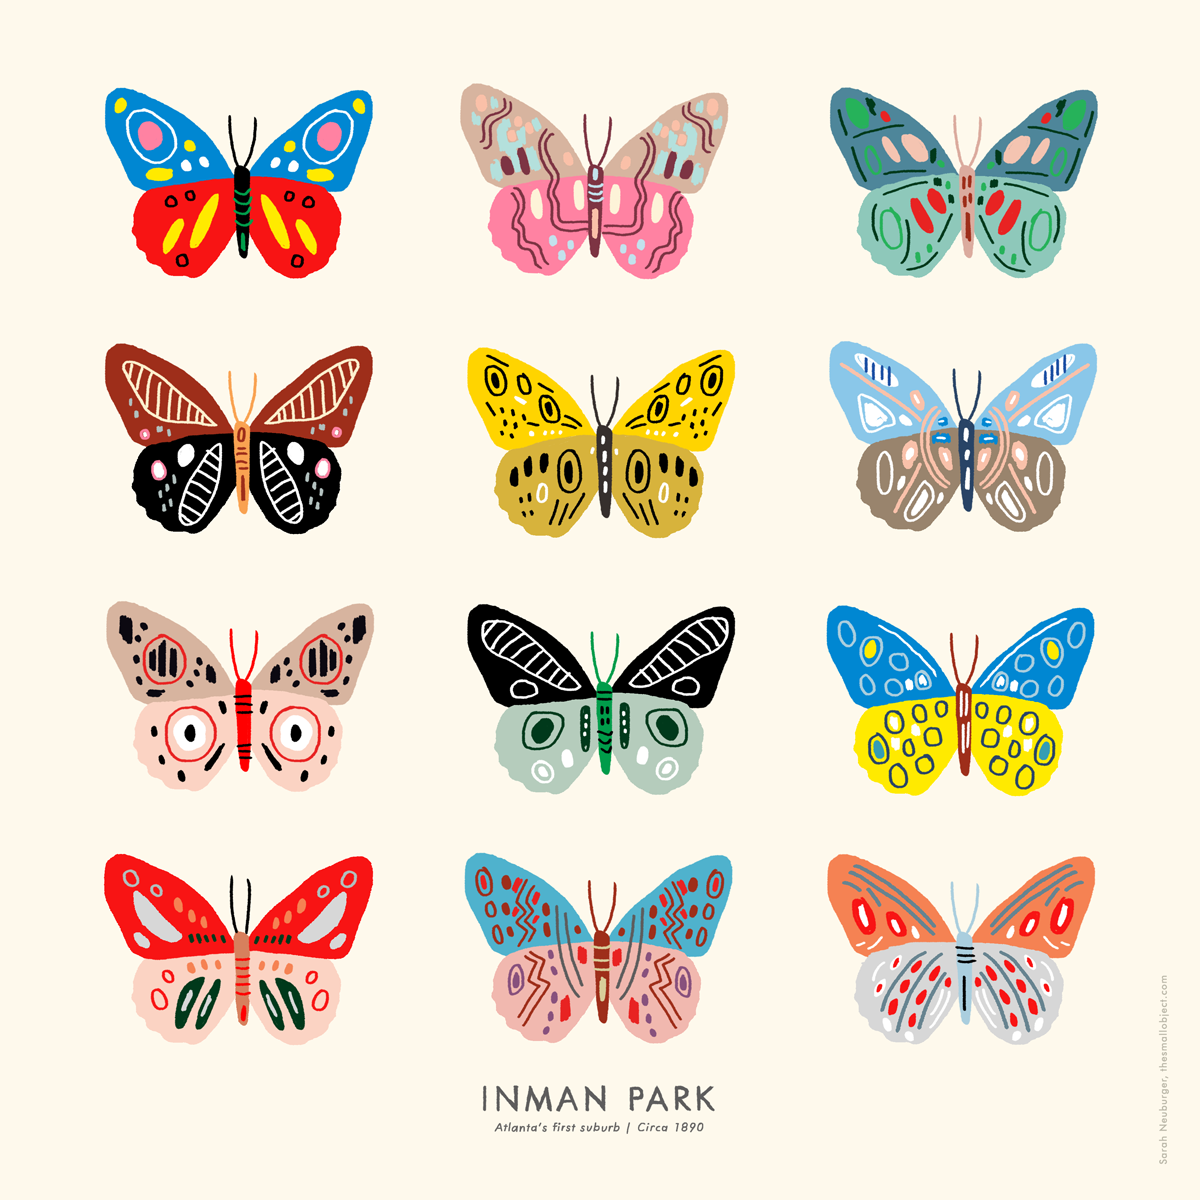 Inman Park - product image